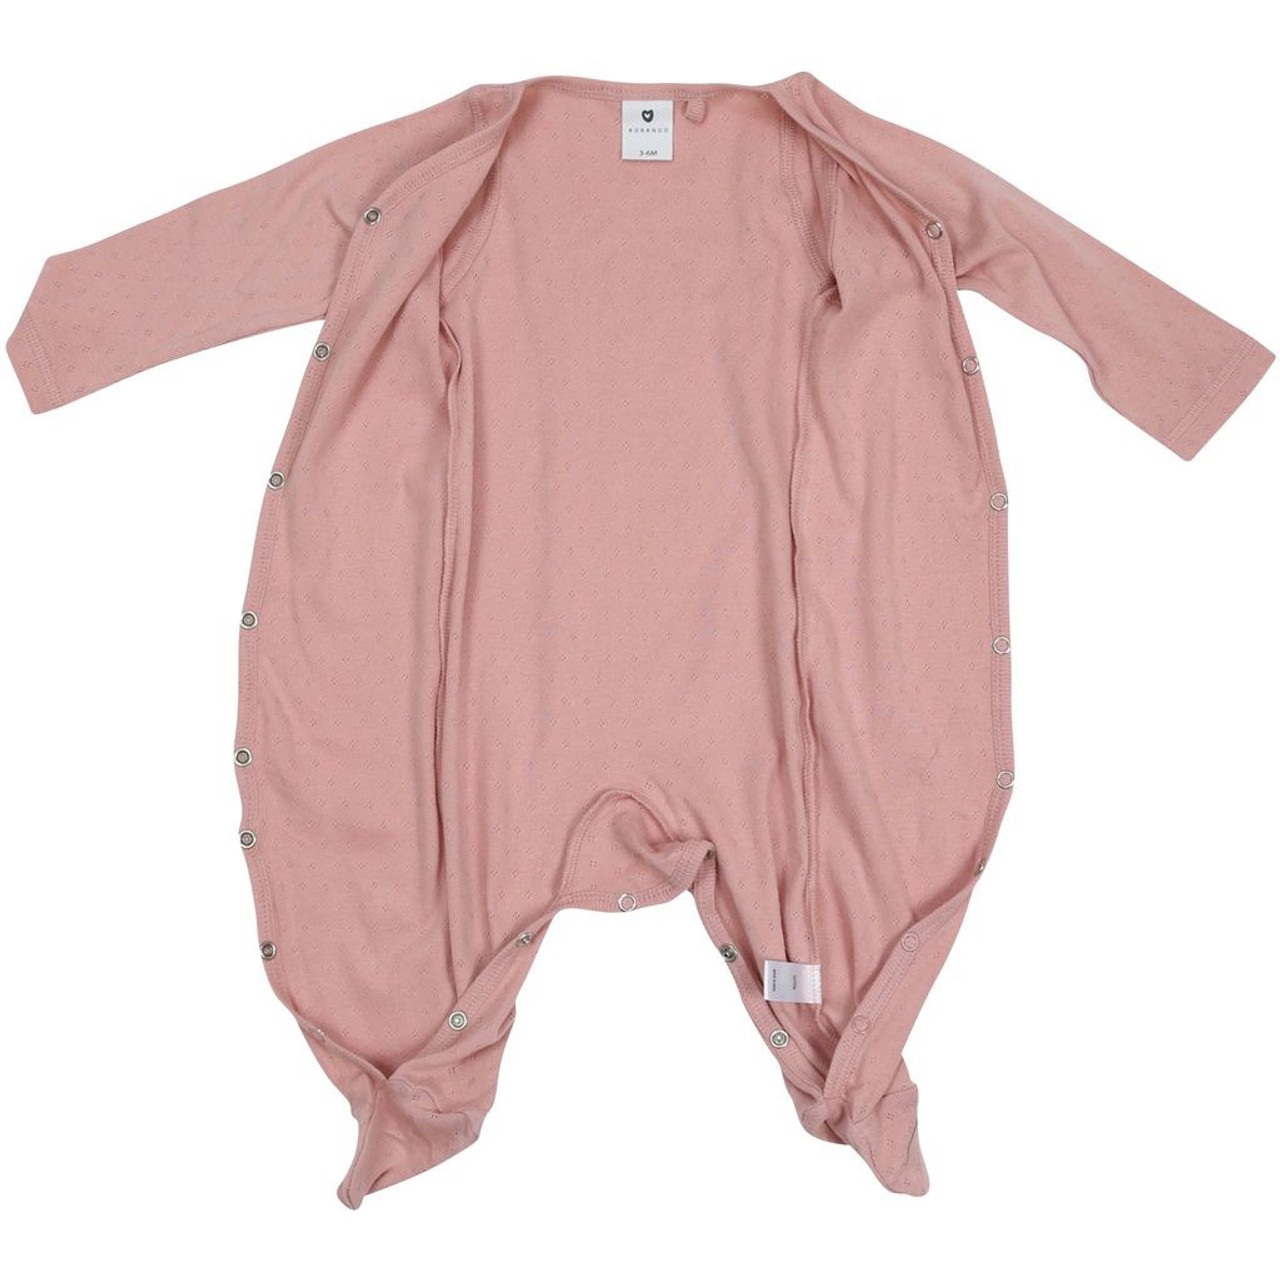 Korango Pointelle Romper Pink at Baby Barn Discounts This cotton romper has easy access press stud buttons at the front of the romper with enclosed feet to keep bub cuddly and warm.